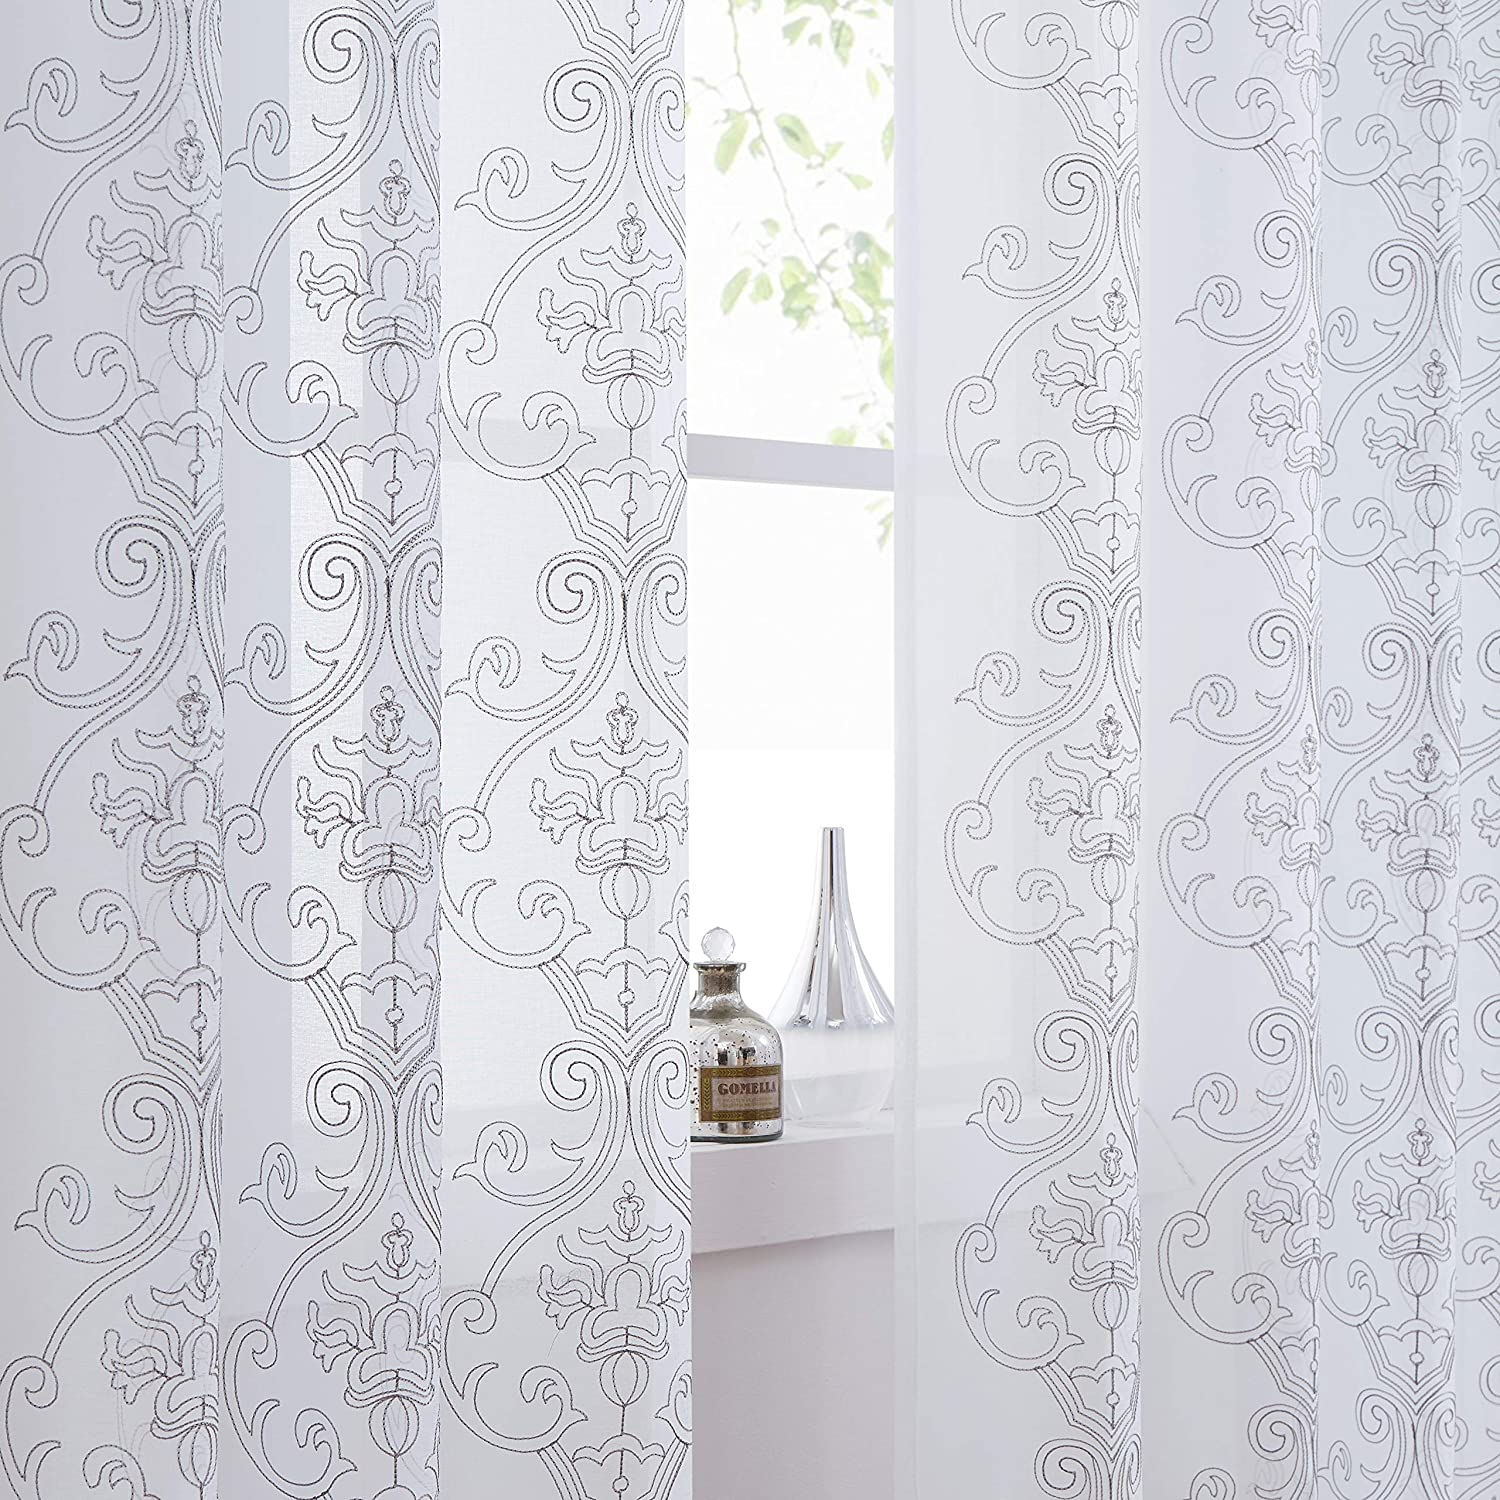 Amzedecor Sheer Curtain Panels Damask Embroidery Window Treatment Sets Grommets Top Drapes for Living Room,Dining Room,Schoolroom,White and Sliver Gray,55''x84'',Set 2